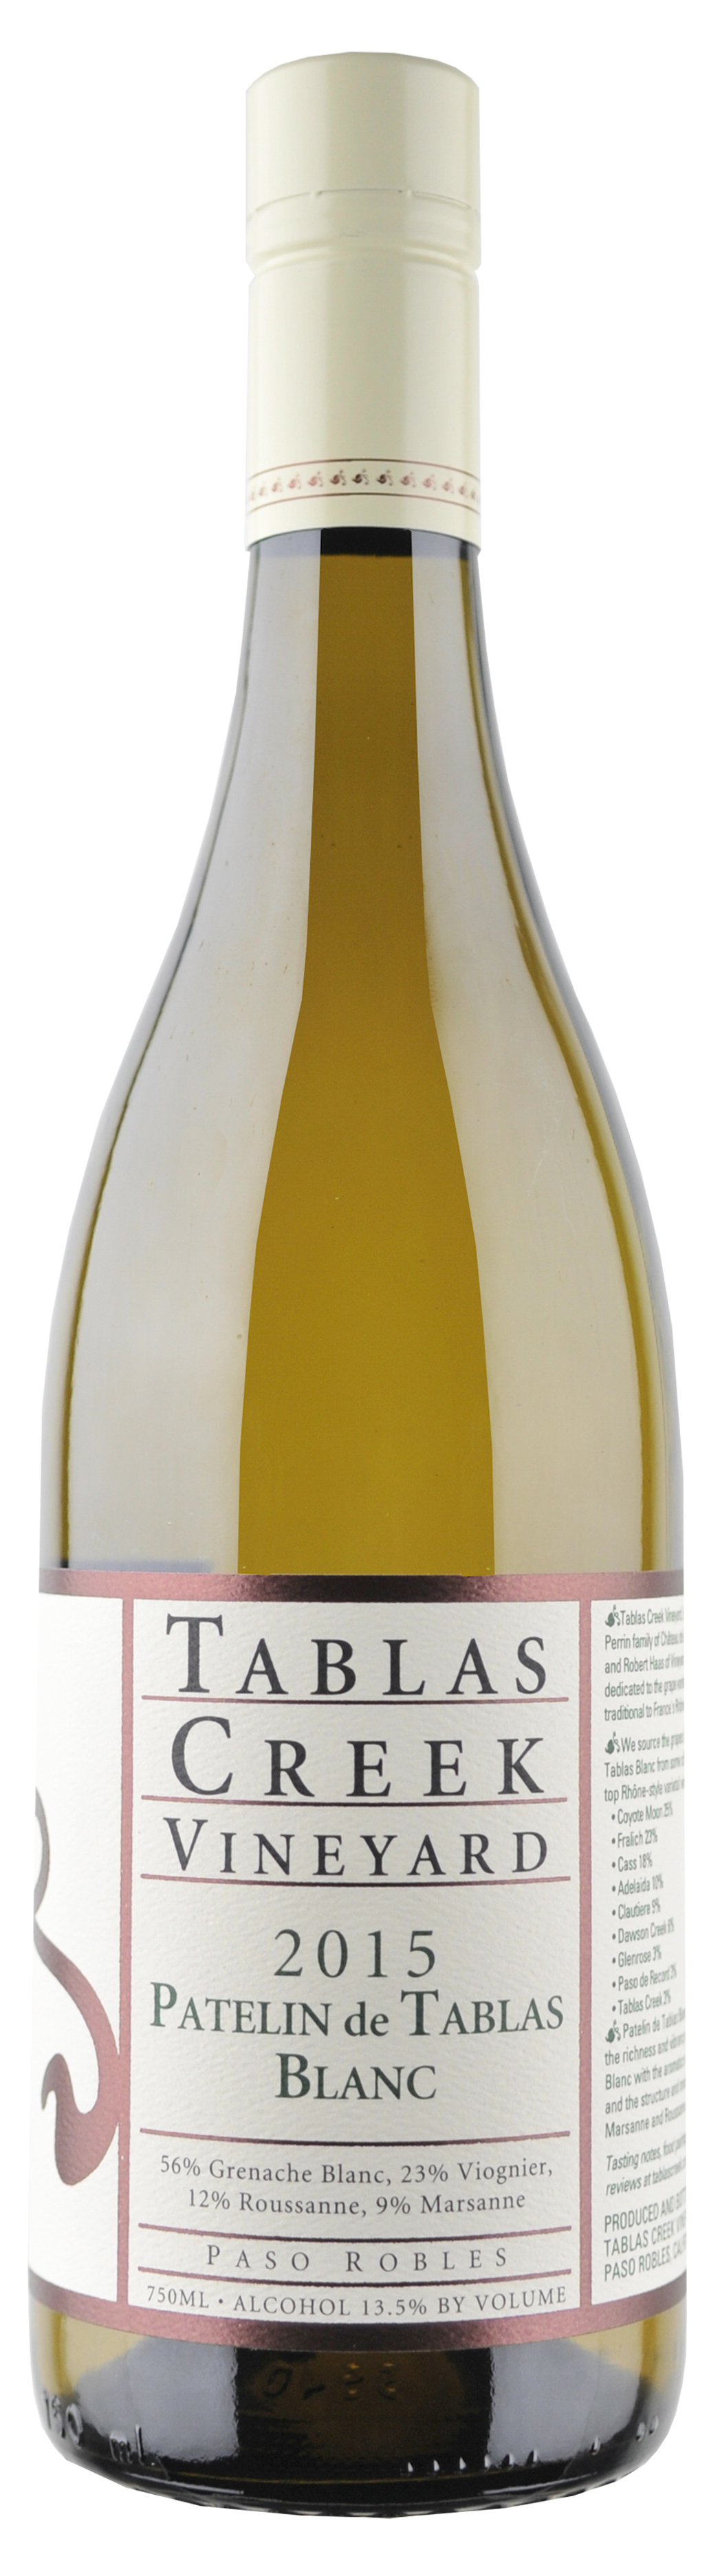 Tablas Creek Patelin de Tablas Blanc 2015 Bottle.jpg